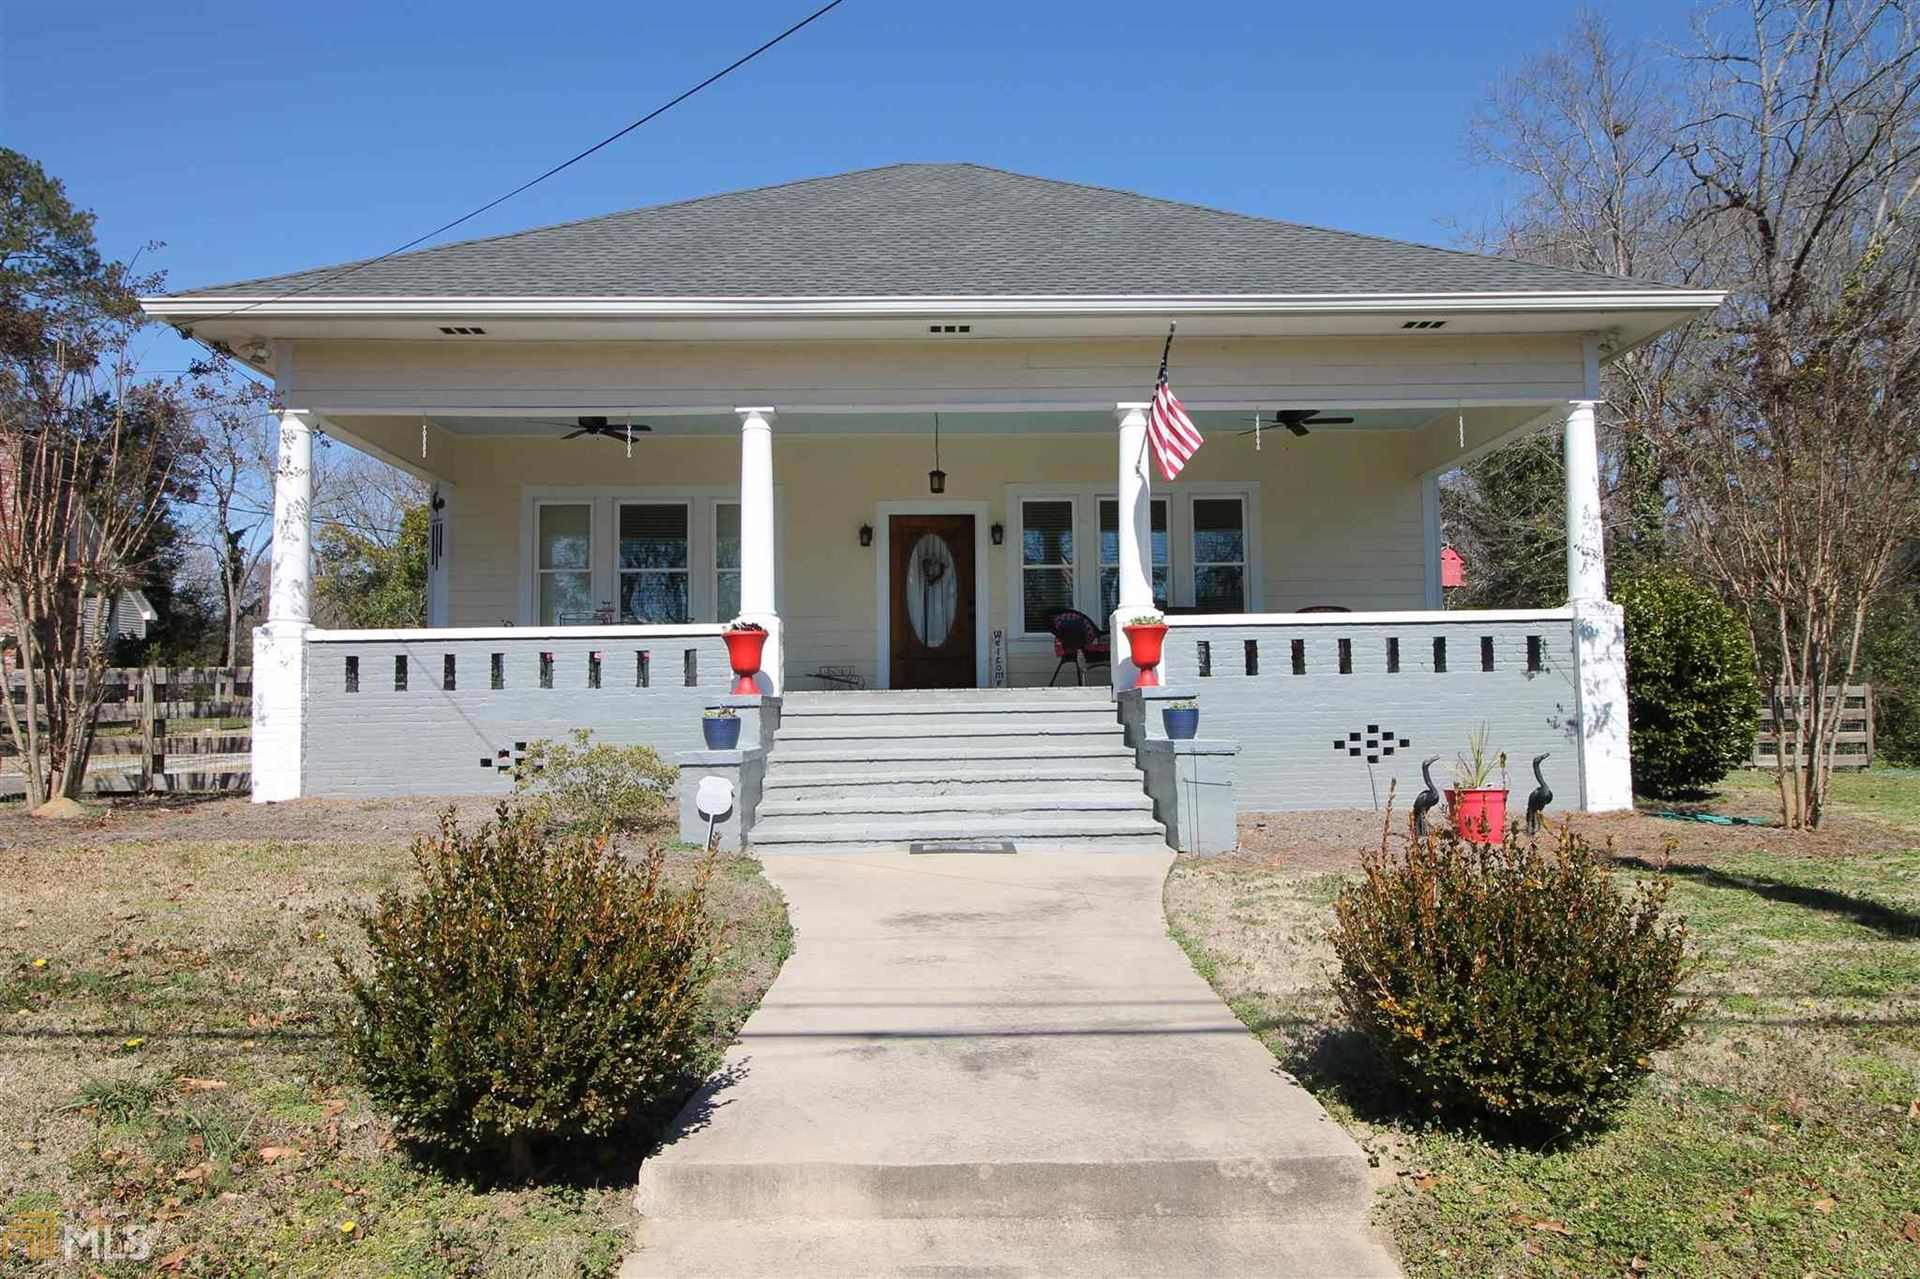 Photo of 134 W Main St, Rutledge, GA 30663 (MLS # 8939369)